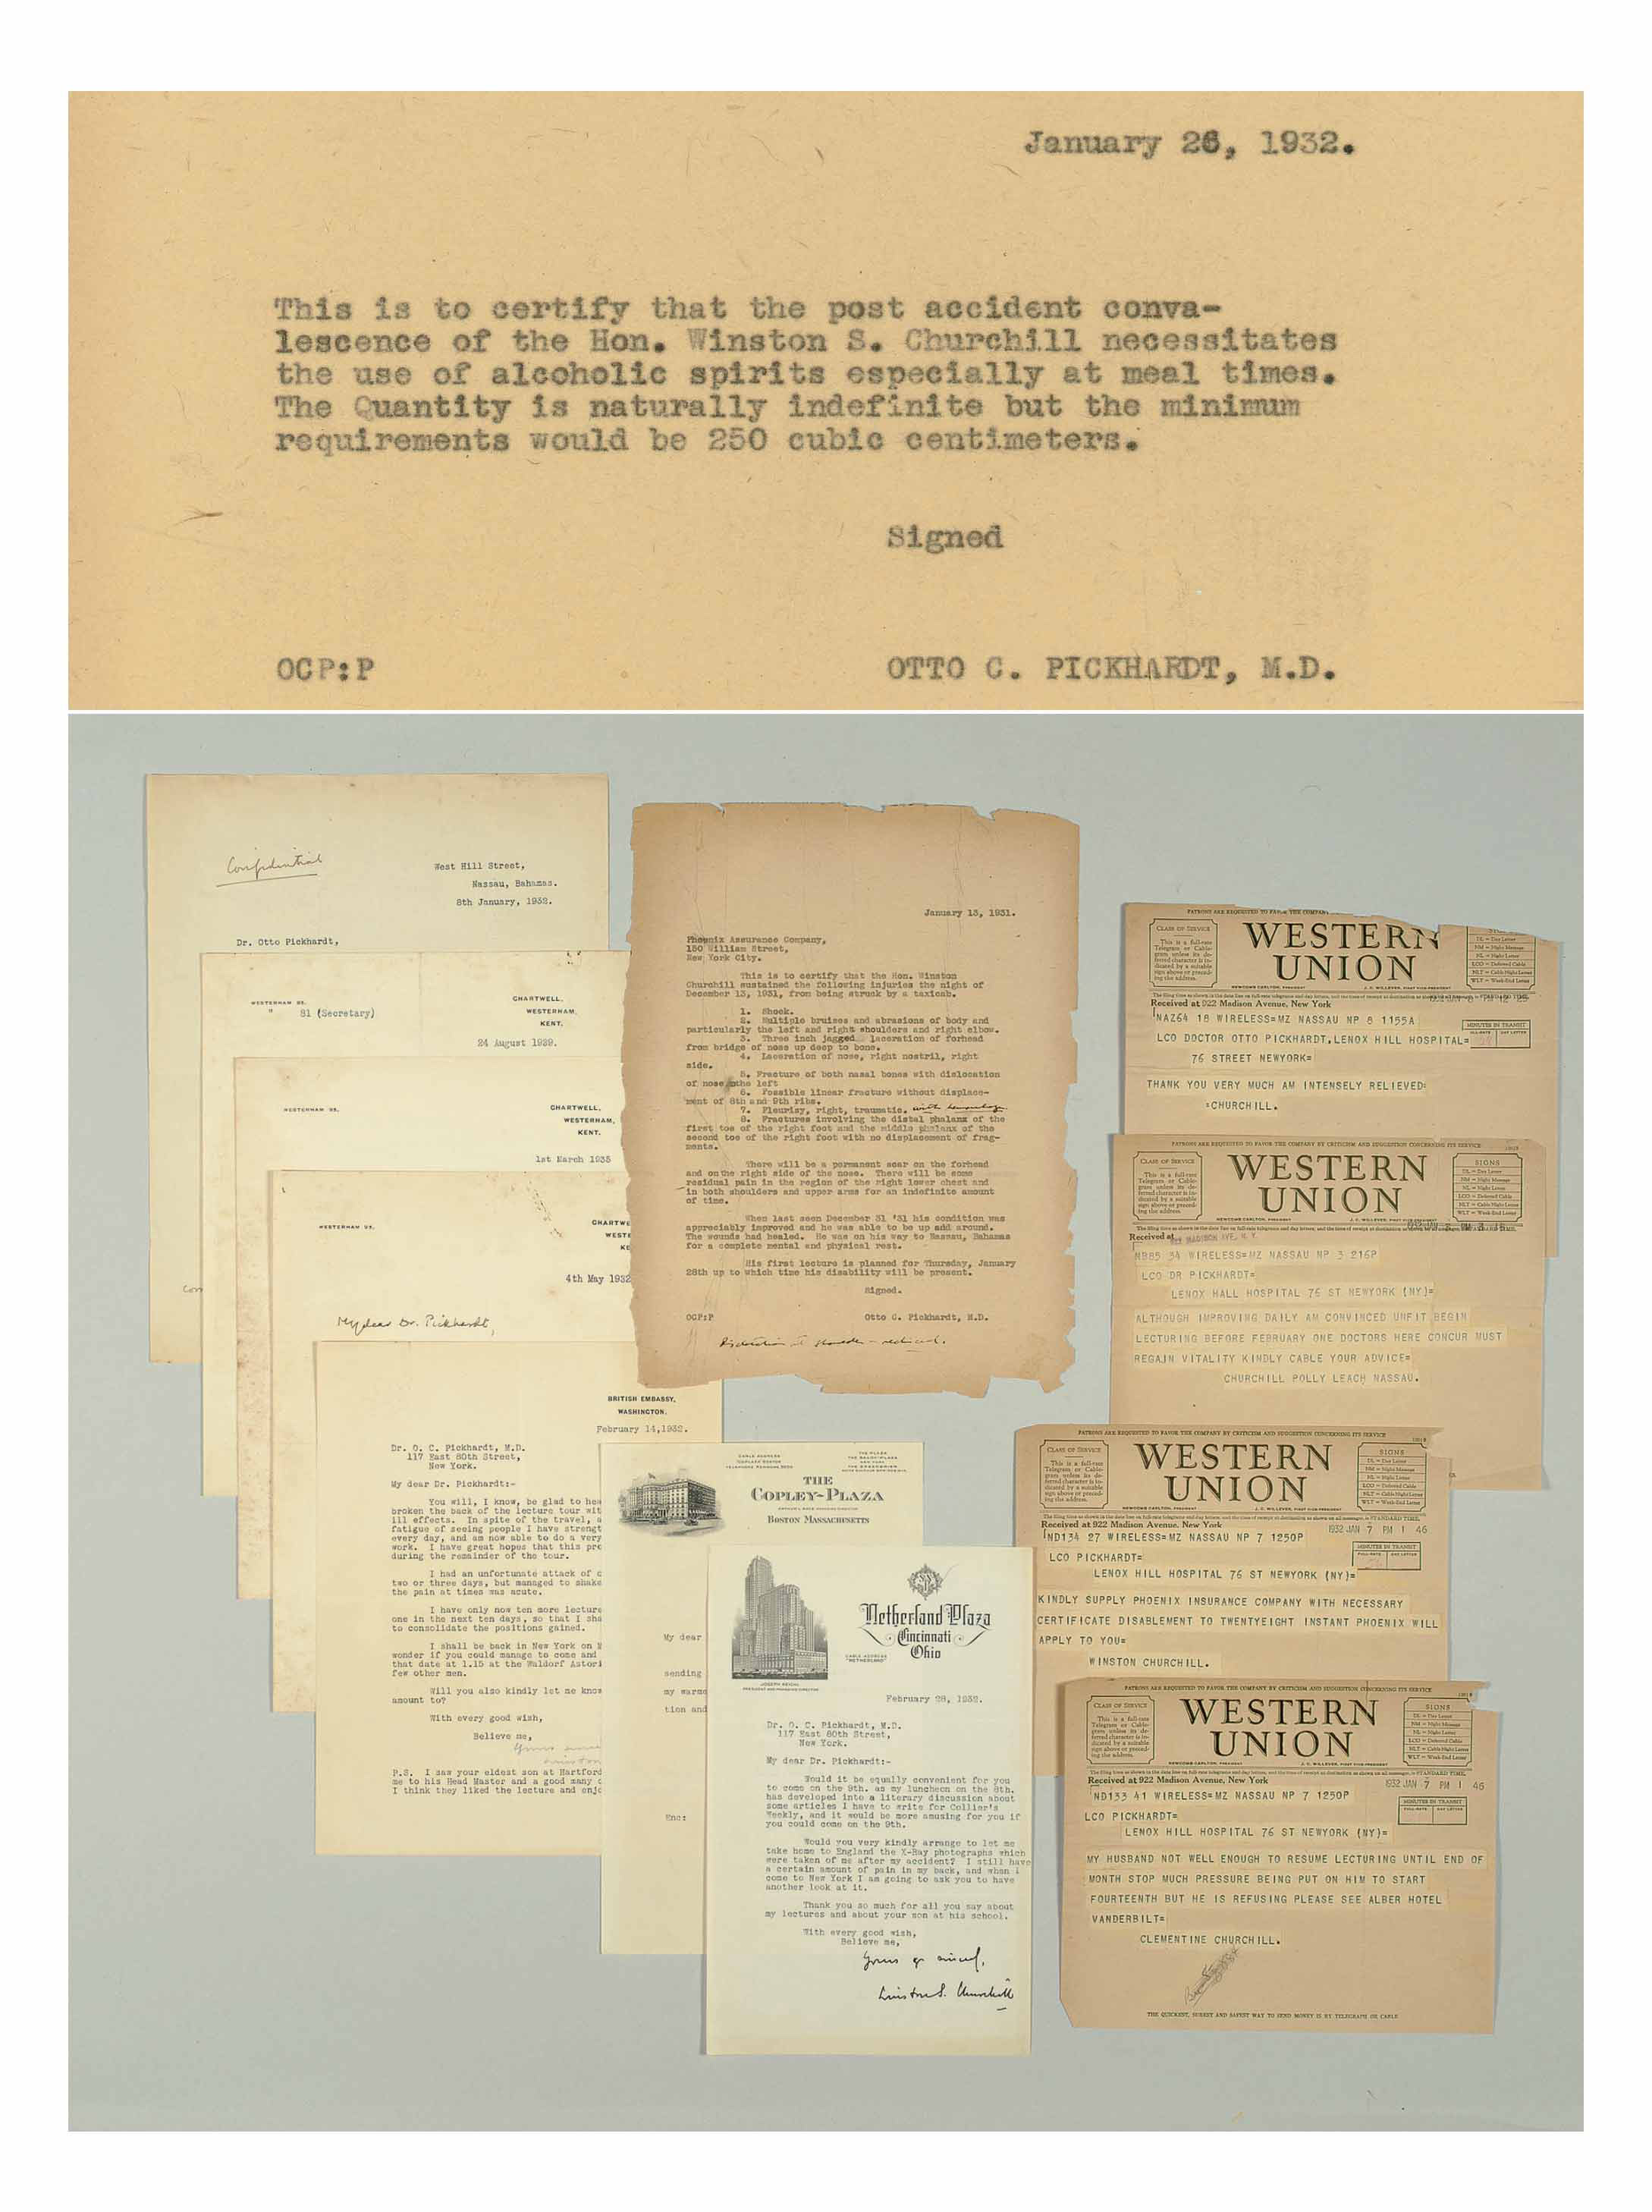 """CHURCHILL, Winston S. An archive of correspondence between Winston S. Churchill and Dr. Otto C. Pickhardt, the treating physician after Churchill's New York City traffic accident, December 1931 - April 1963. Comprising 7 typed letters signed (""""Winston S. Churchill"""") and one typed note, unsigned, on White House stationery; 9 printed telegrams from Churchill to Pickhardt; and some 50 carbons of Pickhardt's letters to Churchill. PLUS TWO X-RAYS OF CHURCHILL'S HEAD. Together 66 pages, 4to and 8vo; also with Pickhardt's 26-page scrapbook of several dozens of newspaper clippings relating to the accident and Churchill's subsequent career."""